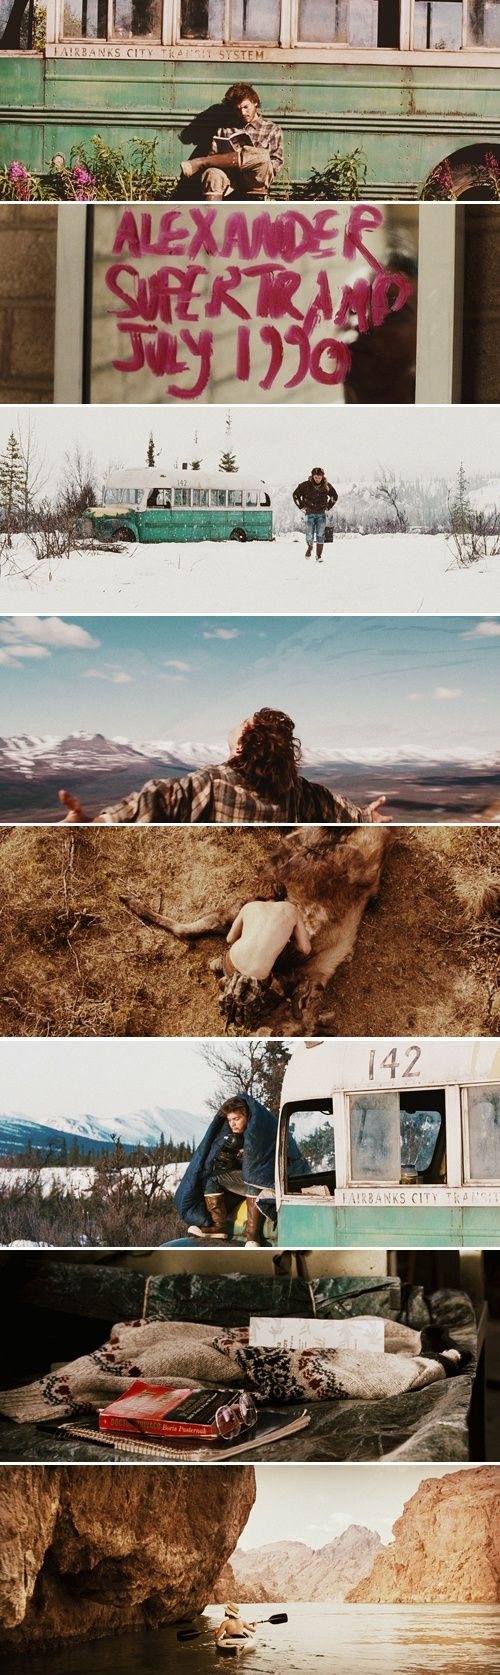 Into the wild (2007) such a moving film. I do tend to over analyze things, but this movie really shook me to my core. Beautifully tragic. The fact that it's based off of true events makes it even more emotional. (scheduled via http://www.tailwindapp.com?utm_source=pinterest&utm_medium=twpin&utm_content=post116427013&utm_campaign=scheduler_attribution)